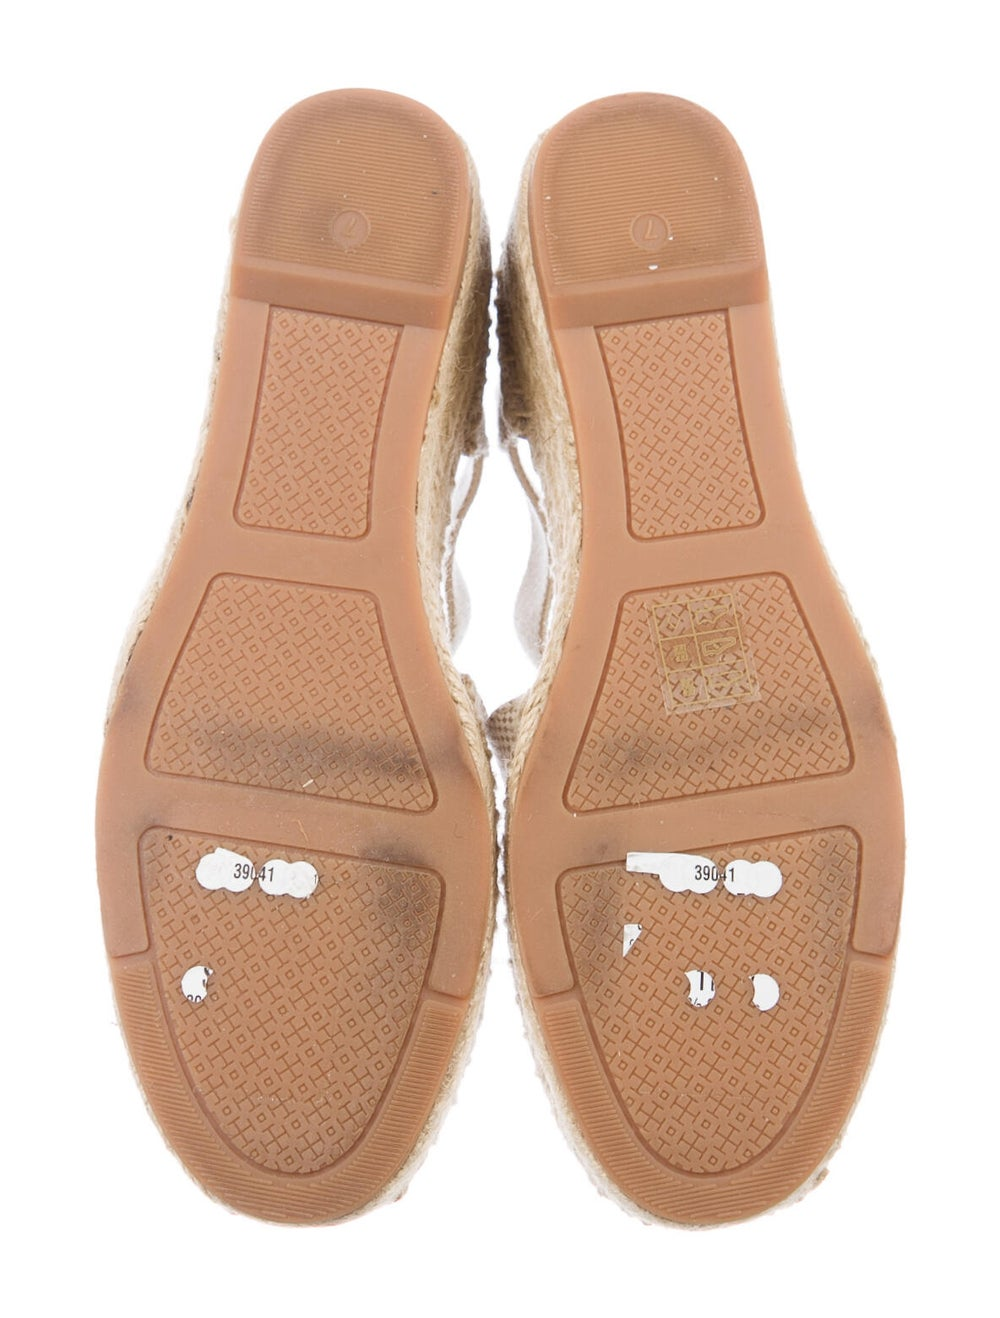 Tory Burch Pumps - image 5